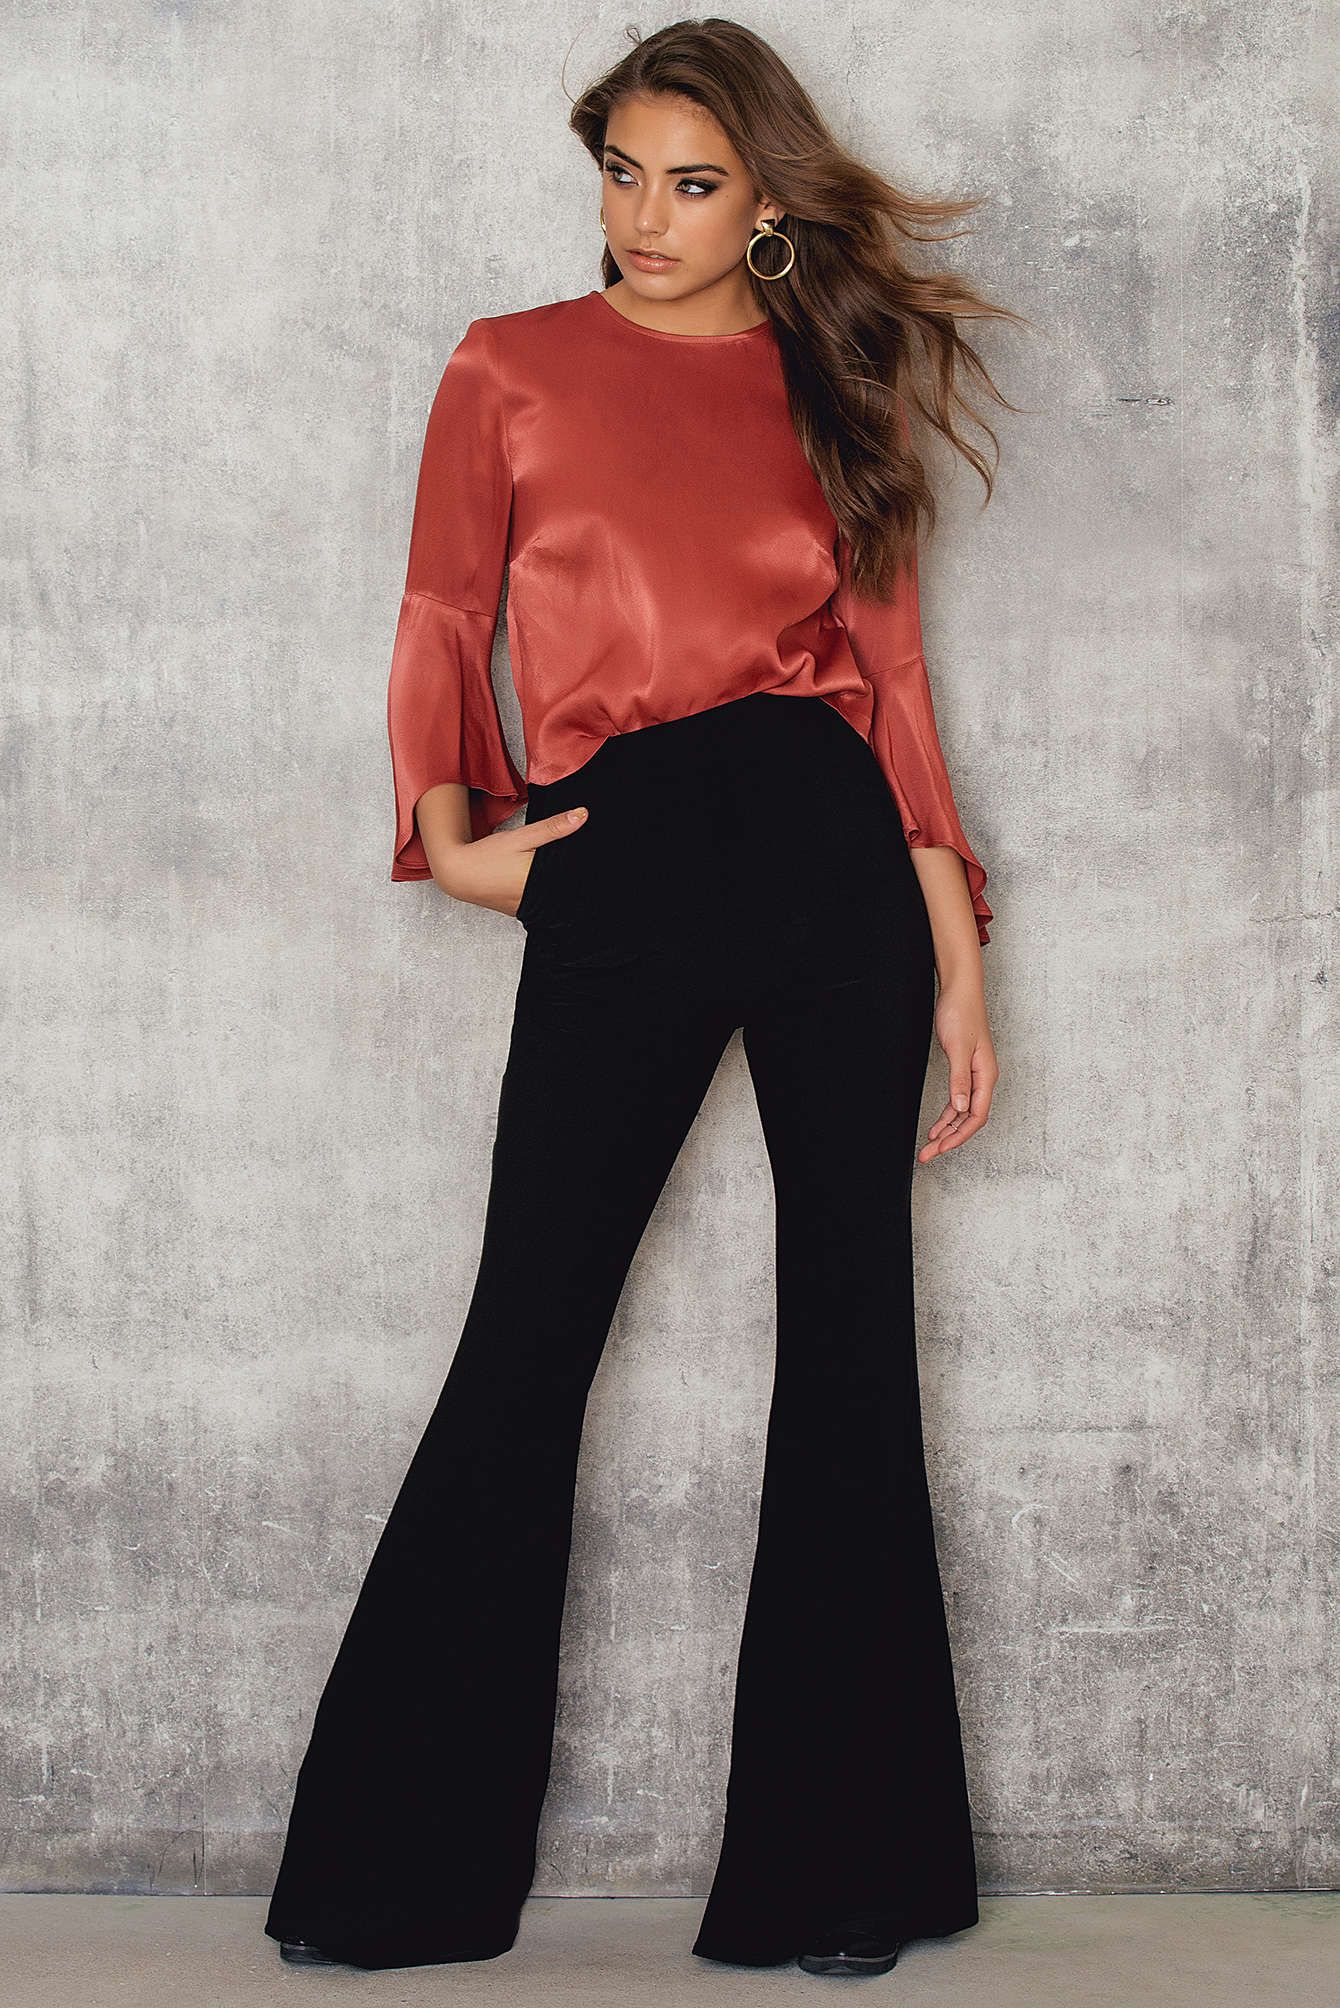 Embrace you inner boho-babe with these flared pants! The Hara Pant by Stylestalker comes in black and features high waist, flares out at hem and a hidden zipper at back. Style them with a cropped top, velvet choker and a big hat to complete this boho look!